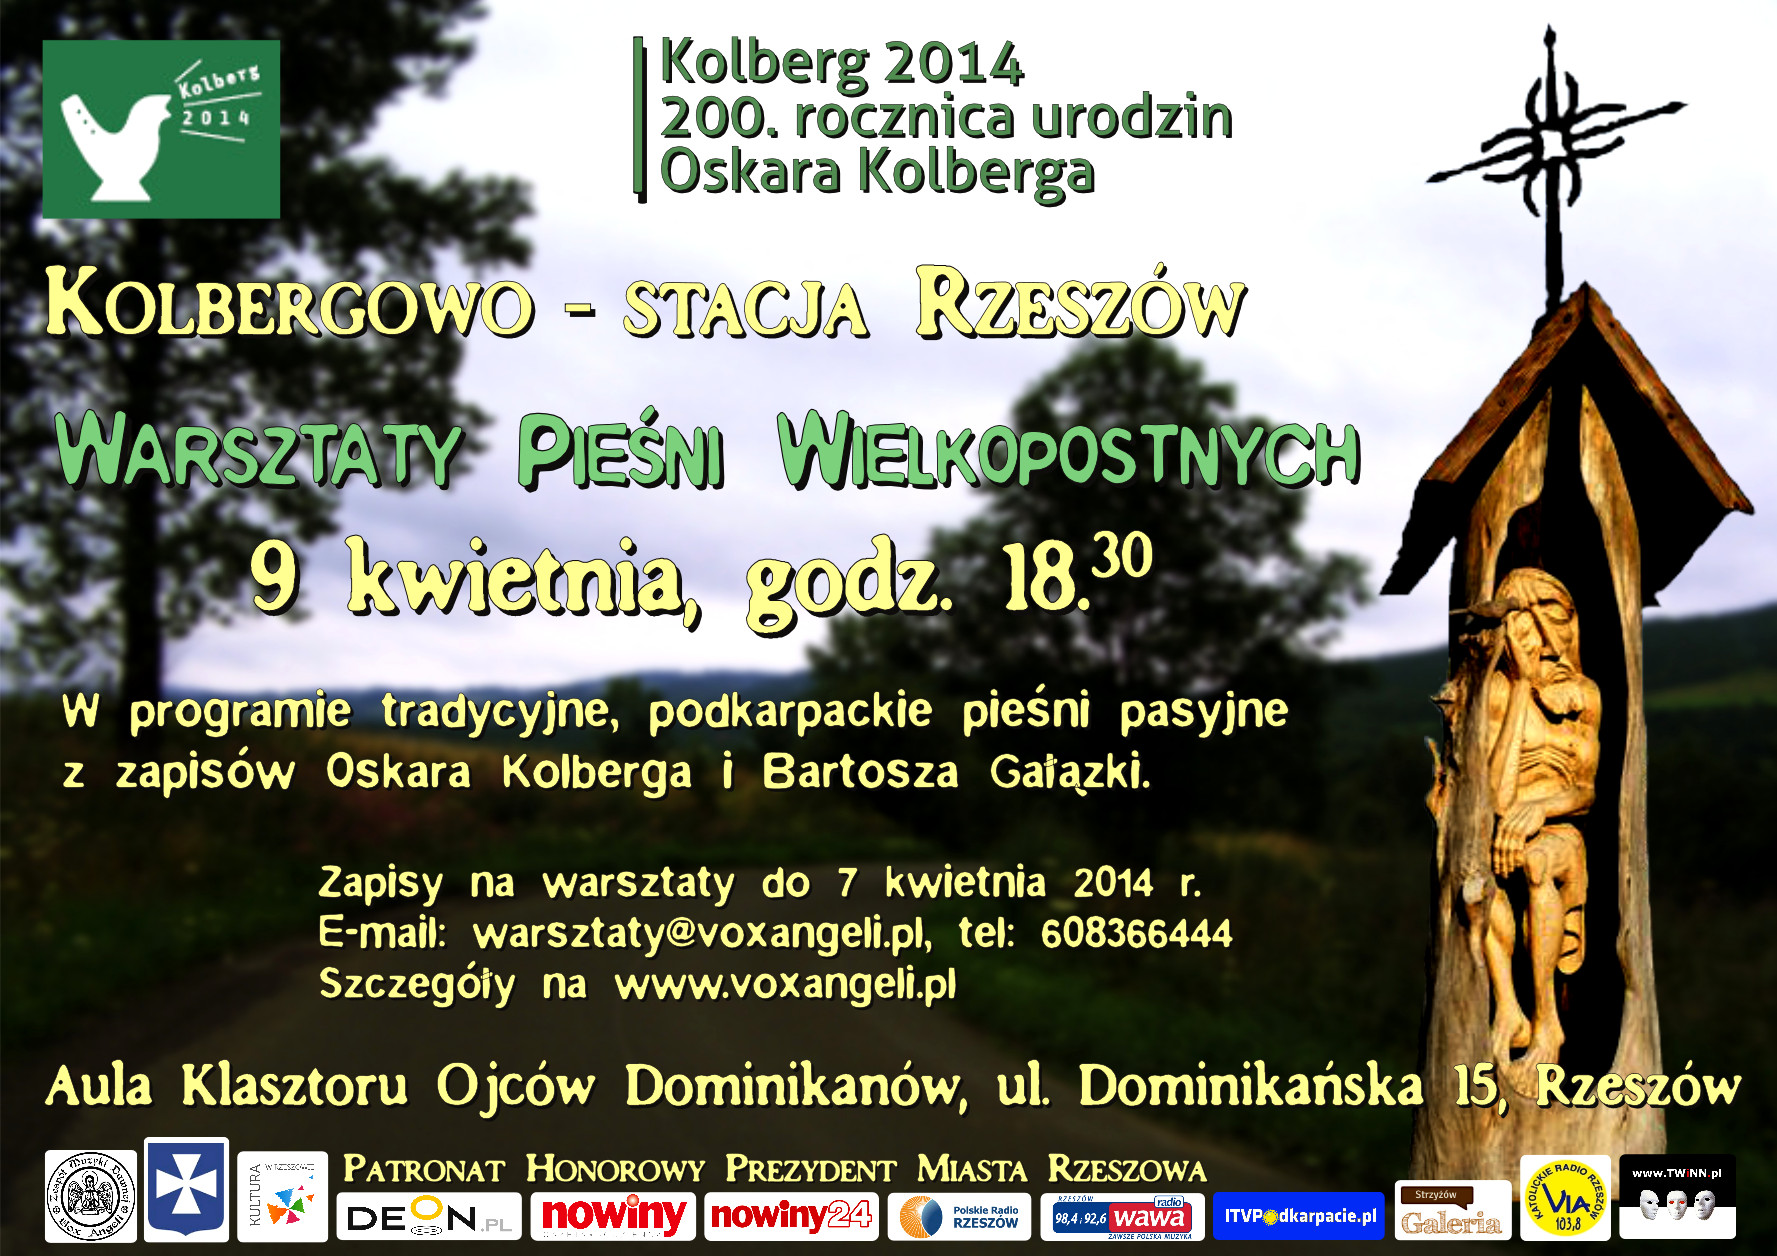 Kolbergowo – Rzeszów station – Workshops of Lent Songs Singing - miniatura